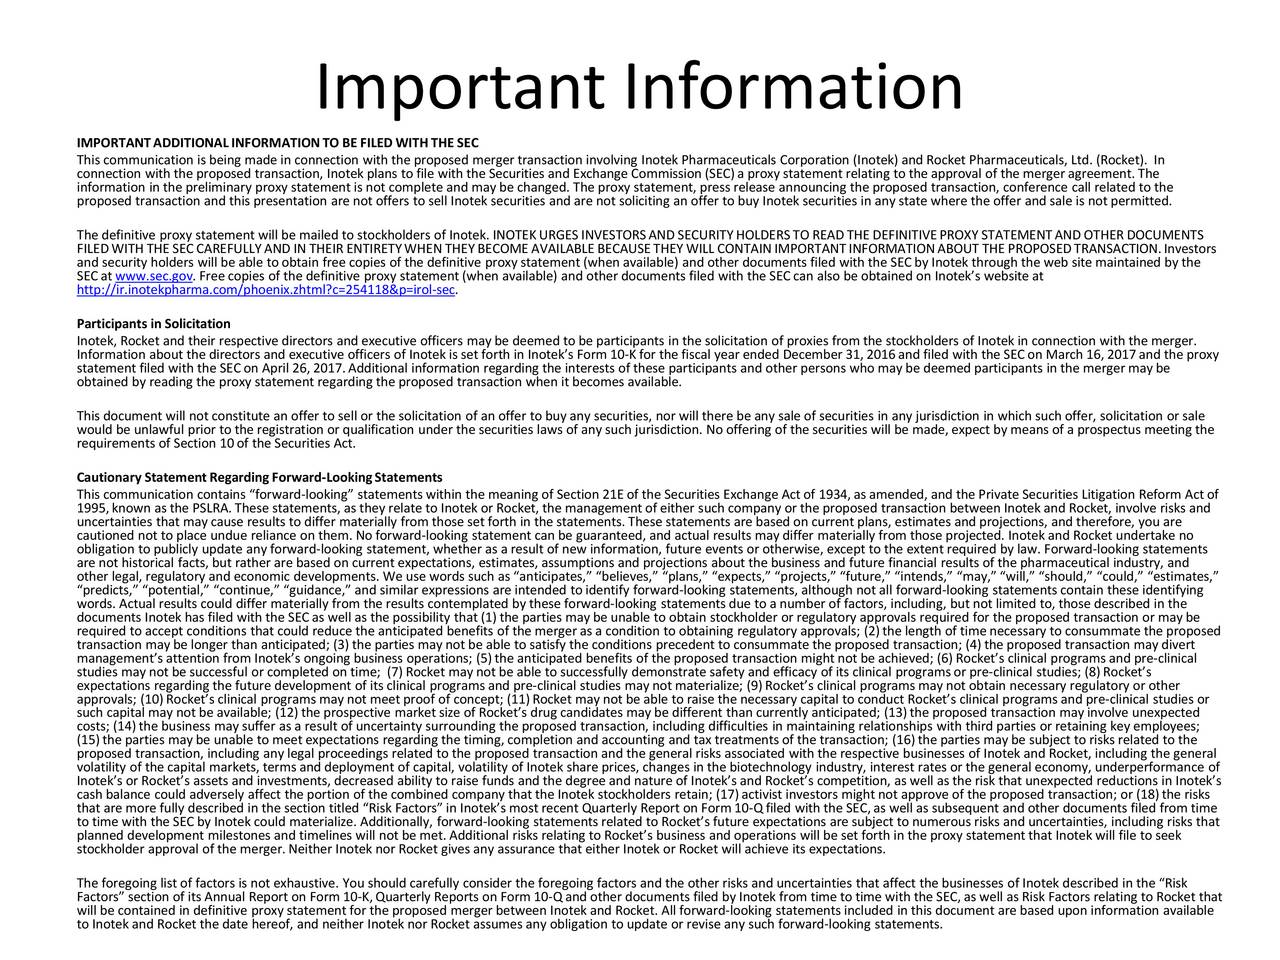 IMPORTANT ADDITIONAL INFORMATIONTO BE FILED WITH THE SEC This communication is being made in connection with the proposed merger transaction involvingInotekPharmaceuticals Corporation (Inotek) and Rocket Pharmaceuticals, Ltd. (Rocket). In connection with the proposed transaction,Inotekplans to file with the Securities and Exchange Commission (SEC)a proxy statement relating to the approval of the mergerement. The proposed transaction and this presentation are not offers to sellInotek securities and are not soliciting an offer to buyInoteksecurities in any state where the offer and sale is not permitted. The definitive proxy statement will be mailed to stockholders of Inotek. INOTEK URGES INVESTORSAND SECURITYHOLDERS TO READ THE DEFINITIVEPROXY STATEMENTAND OTHER DOCUMENTS and security holders will be able to obtain free copies of the definitive proxy statement (when available) and other documenstfiled with the SEC byInotek through the web site maintained by the SEC atwww.sec.gov. Freecopies of the definitive proxy statement(when available) and other documents filed with the SECcan also be obtainedon Inotekswebsite at http://ir.inotekpharma.com/phoenix.zhtml?c=254118&p=irol-sec. Participants in Solicitation Inotek, Rocket and their respective directors and executive officers maybe deemed to be participants in the solicitation of proxies from the stockholders ofInotekin connection with the merger. statement filed with the SECon April 26,2017.Additional information regarding the interests of these participants and other persons who may be deemed participants in the mergermay be the proxy obtained by reading the proxy statement regarding the proposed transaction when it becomes available. would be unlawful prior to the registration or qualification under the securities laws of any such jurisdiction. No offeringof the securities will be made, expect by means of a prospectus meeting the requirements of Section 10of the Securities Act. Cautionary Statement Regarding Forward